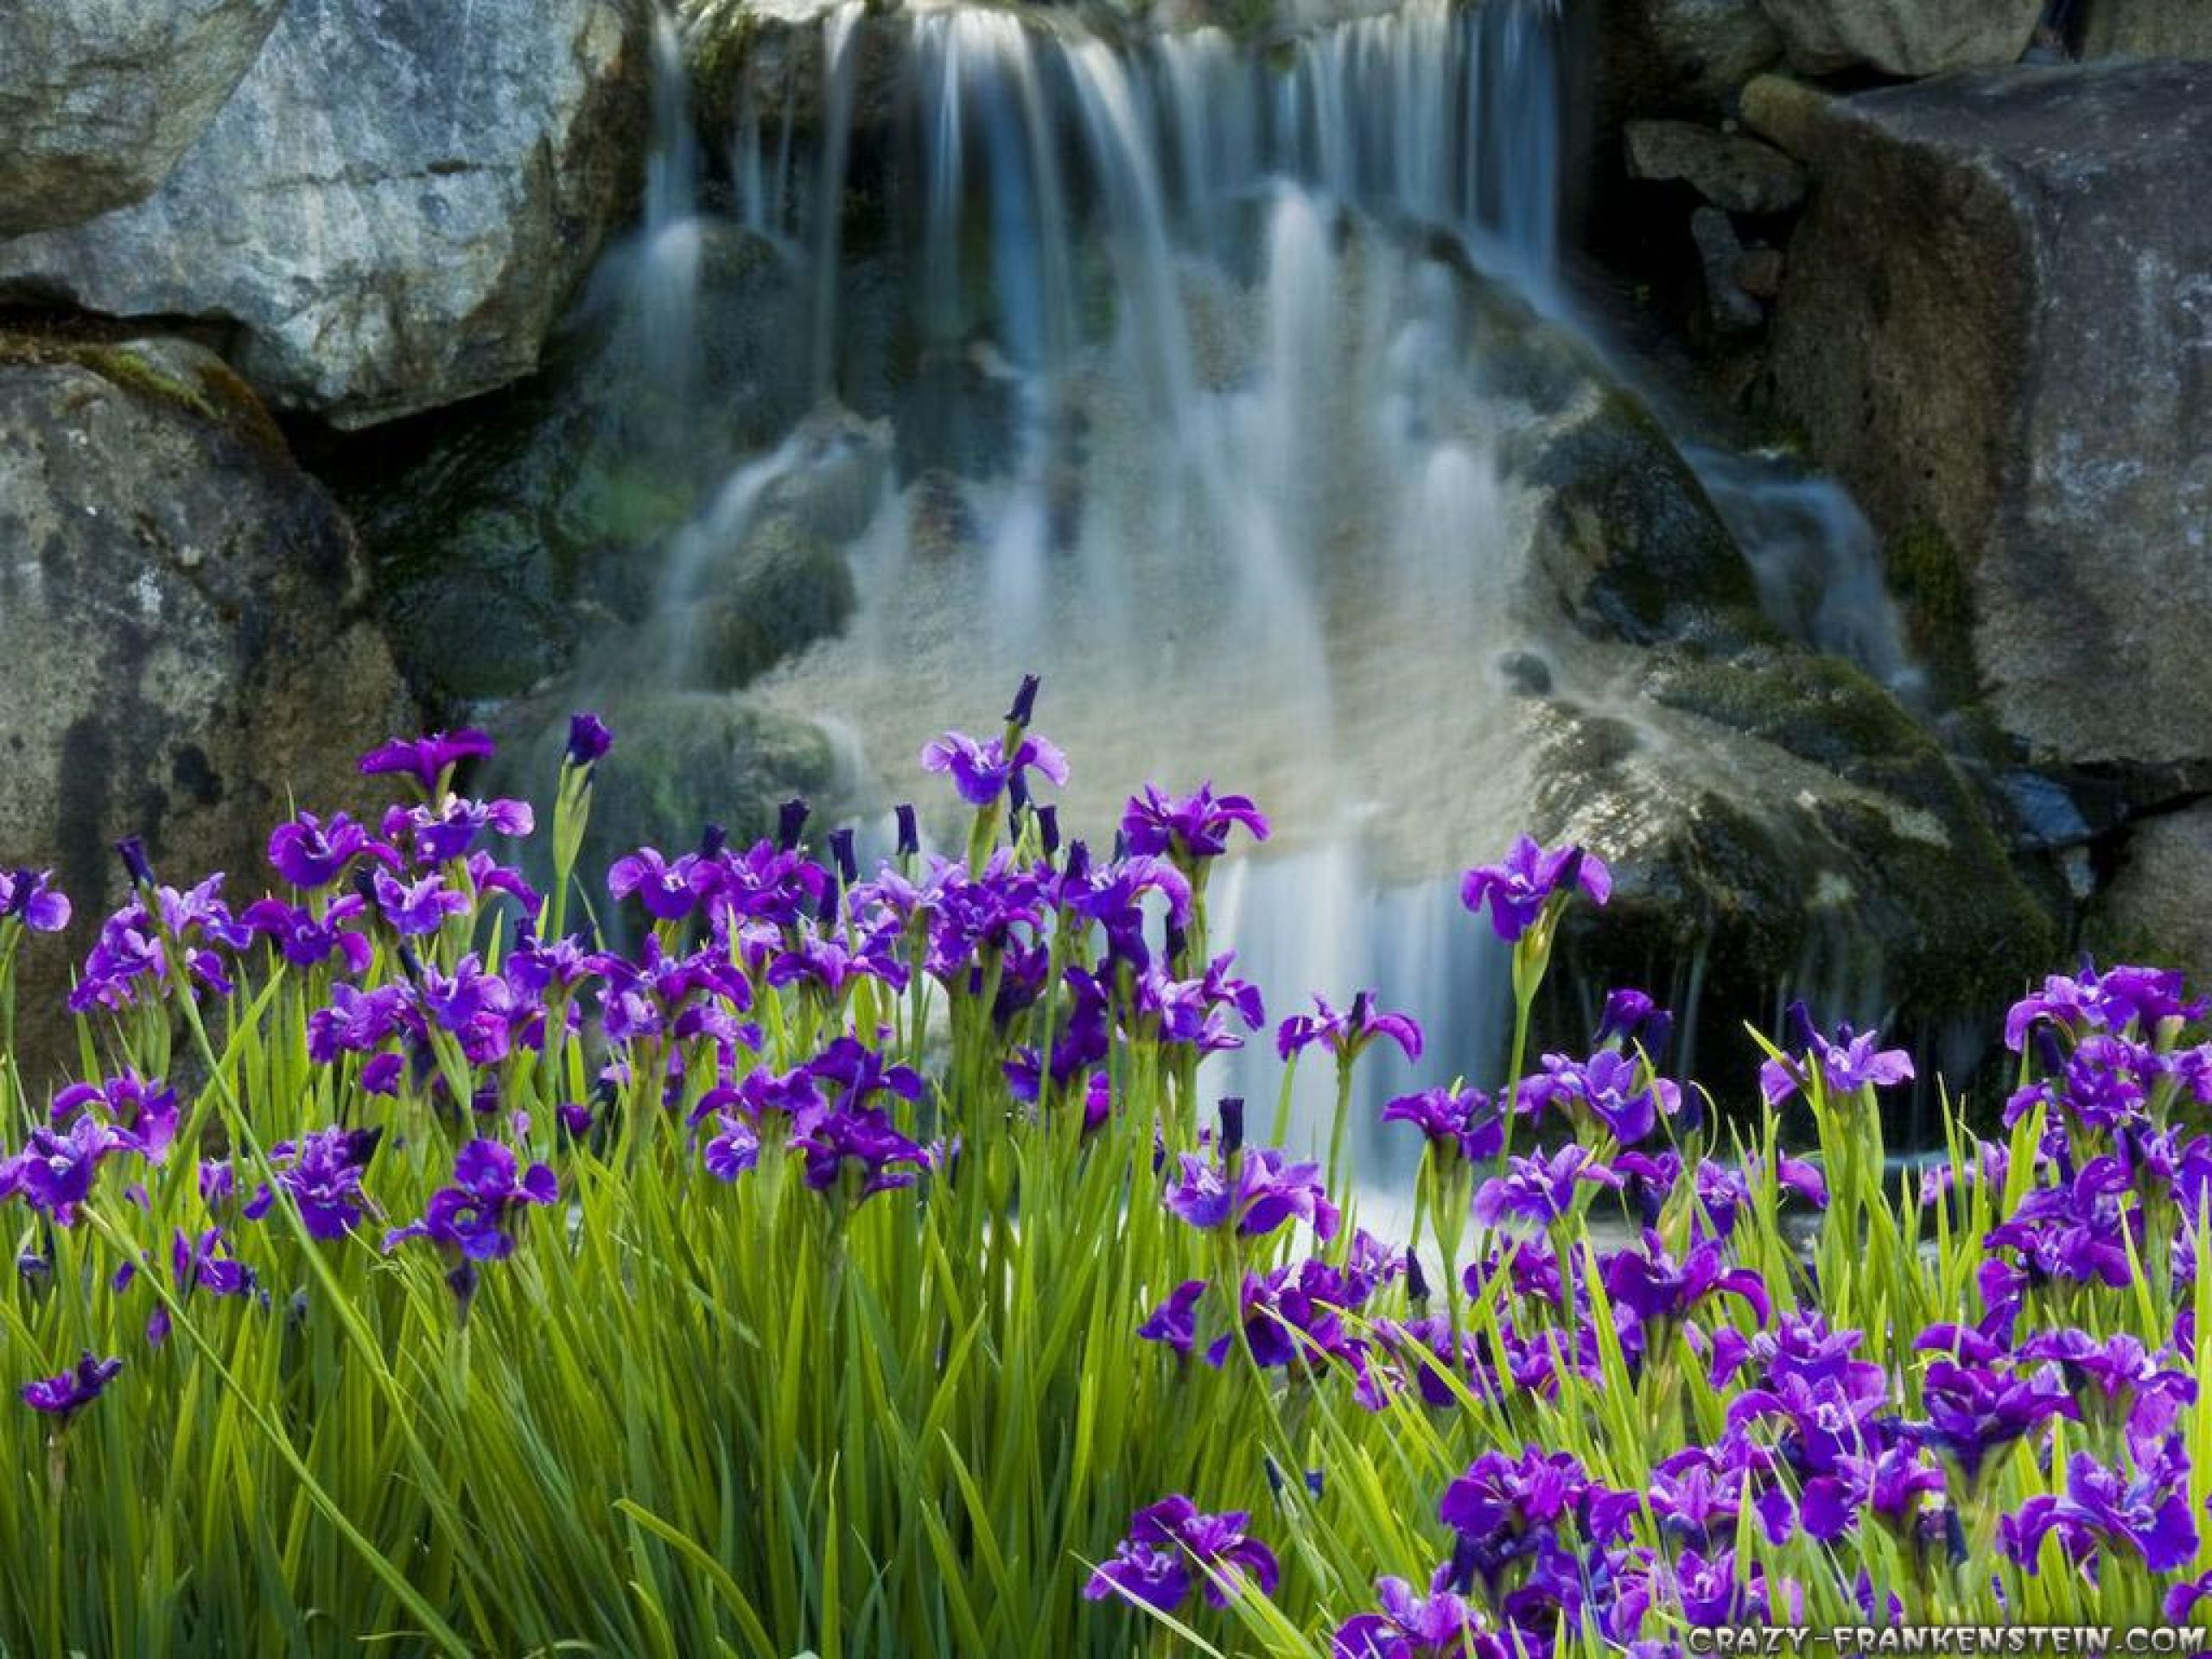 Field Of Purple Iris Flowers Near Waterfall